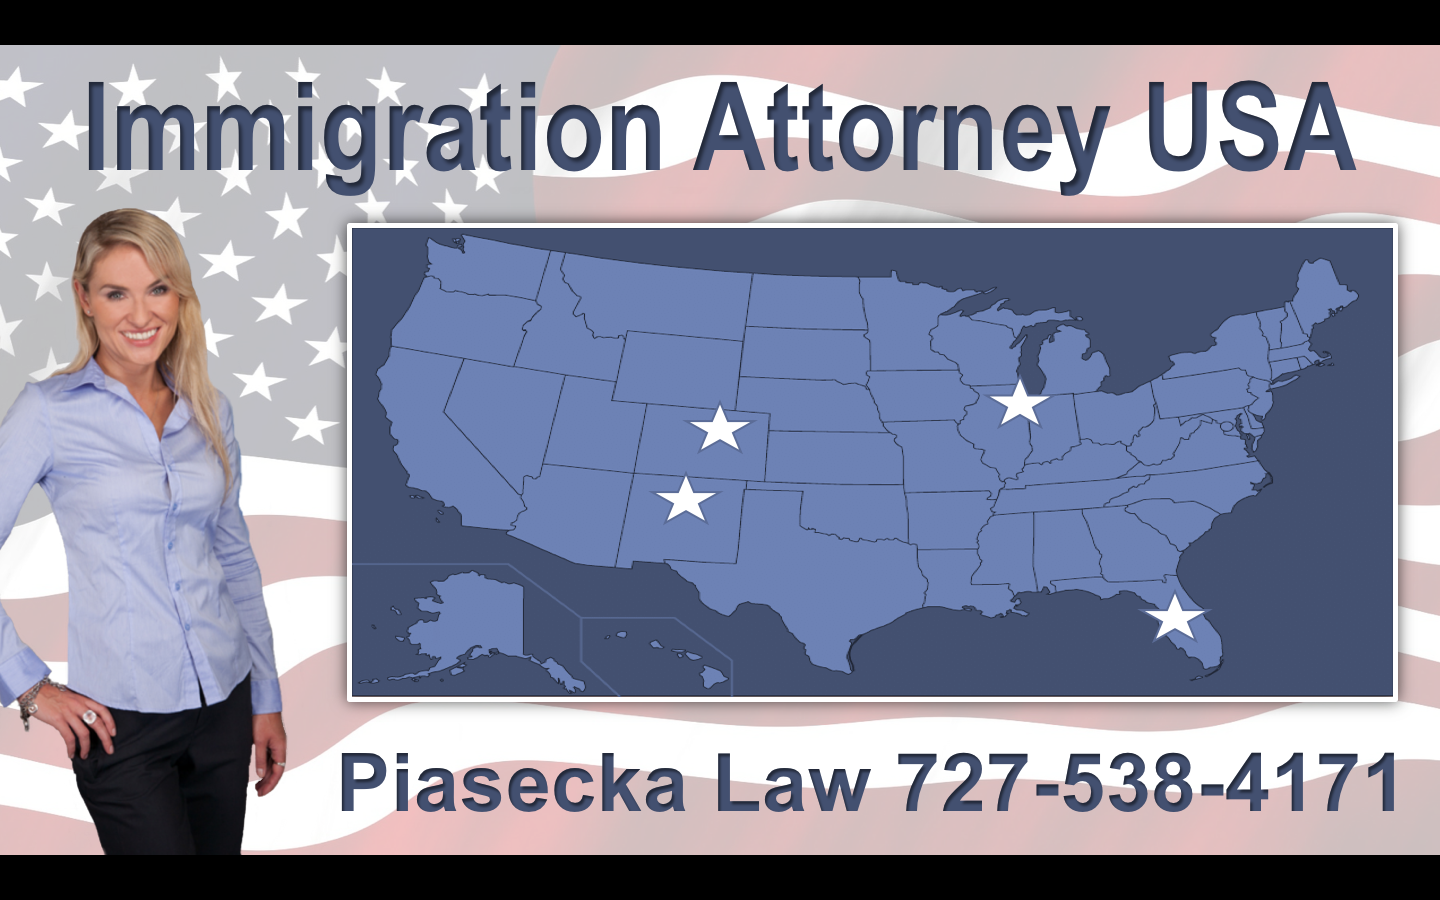 Immigration Attorney USA Piasecka Law